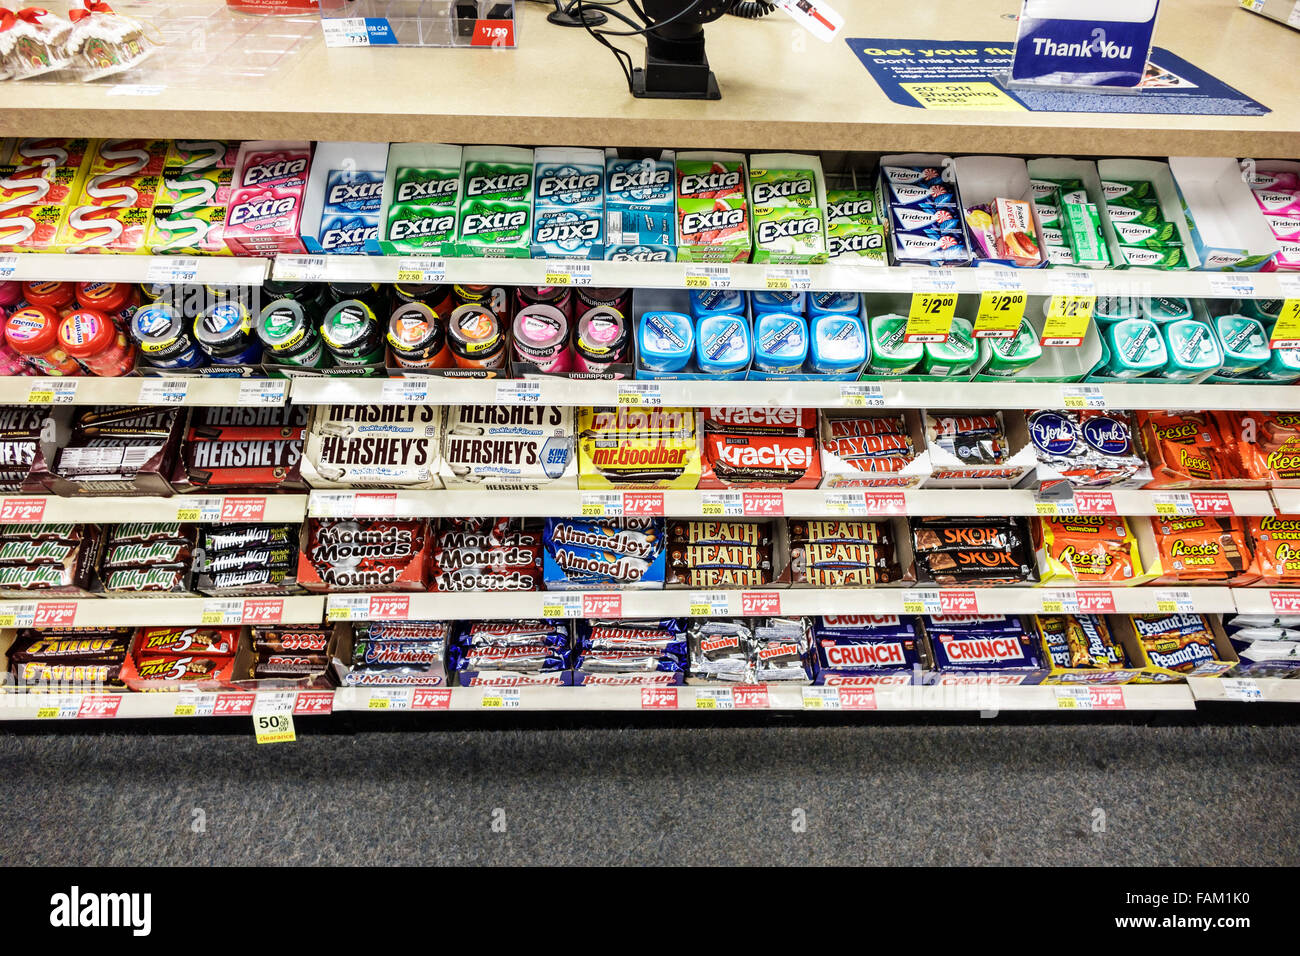 drugstore and usa stock photos drugstore and usa stock images alamy